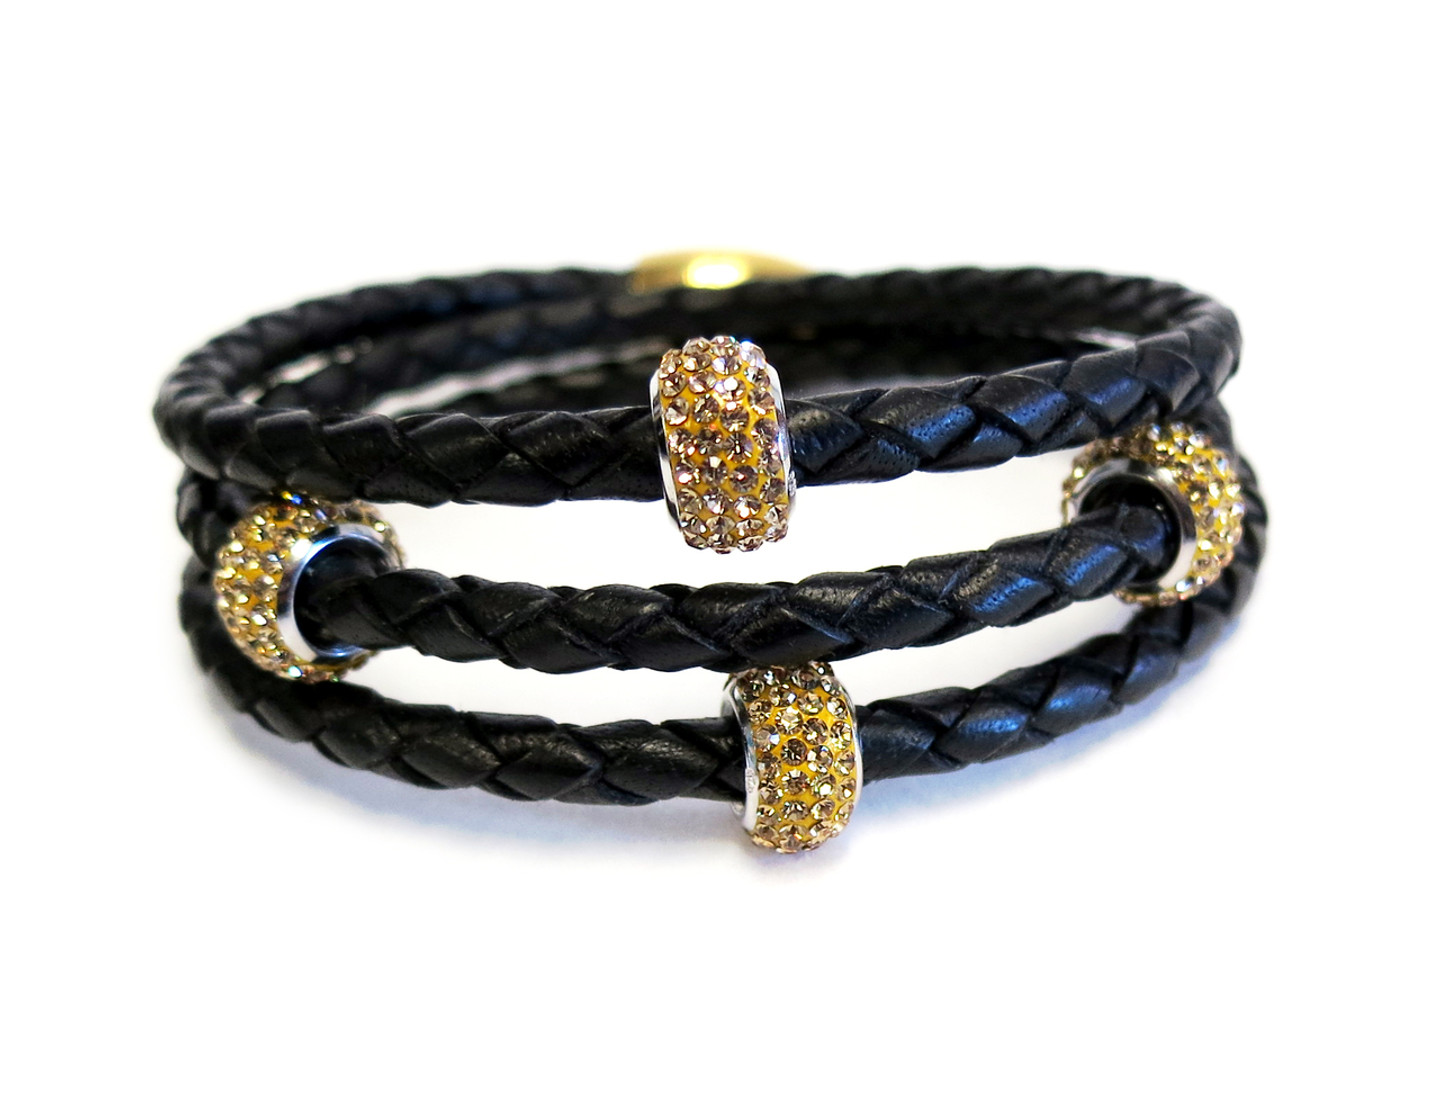 Triple Wrap Rich Braided Leather Bracelet 4 Sterling Silver CZ Beads Magnetic Clasp, the original classic design